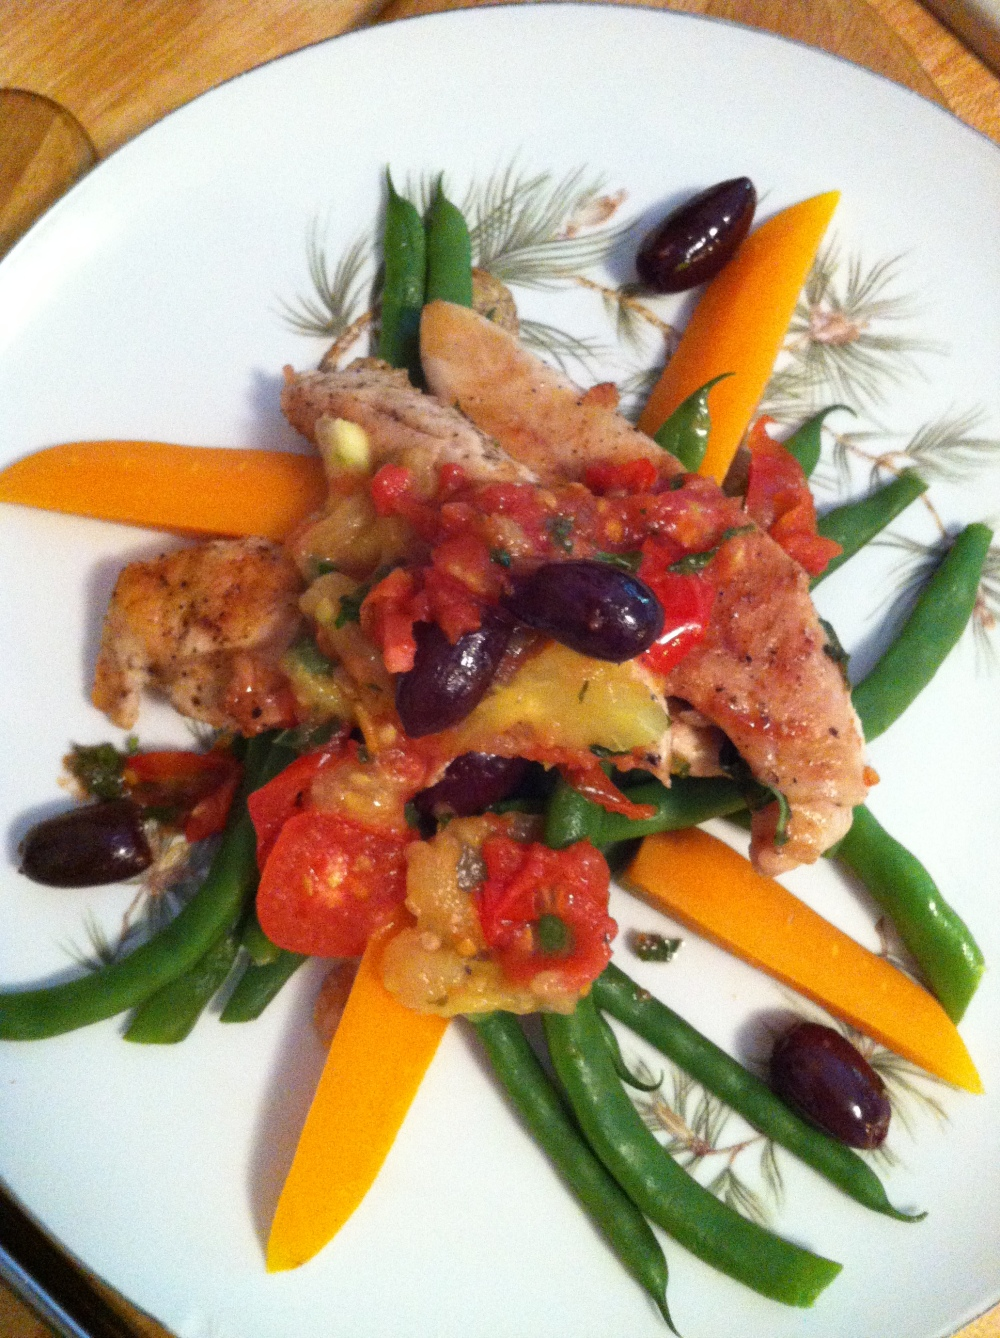 Grilled Chicken with Stewed Tomatoes Over Pole Beans and Carrots